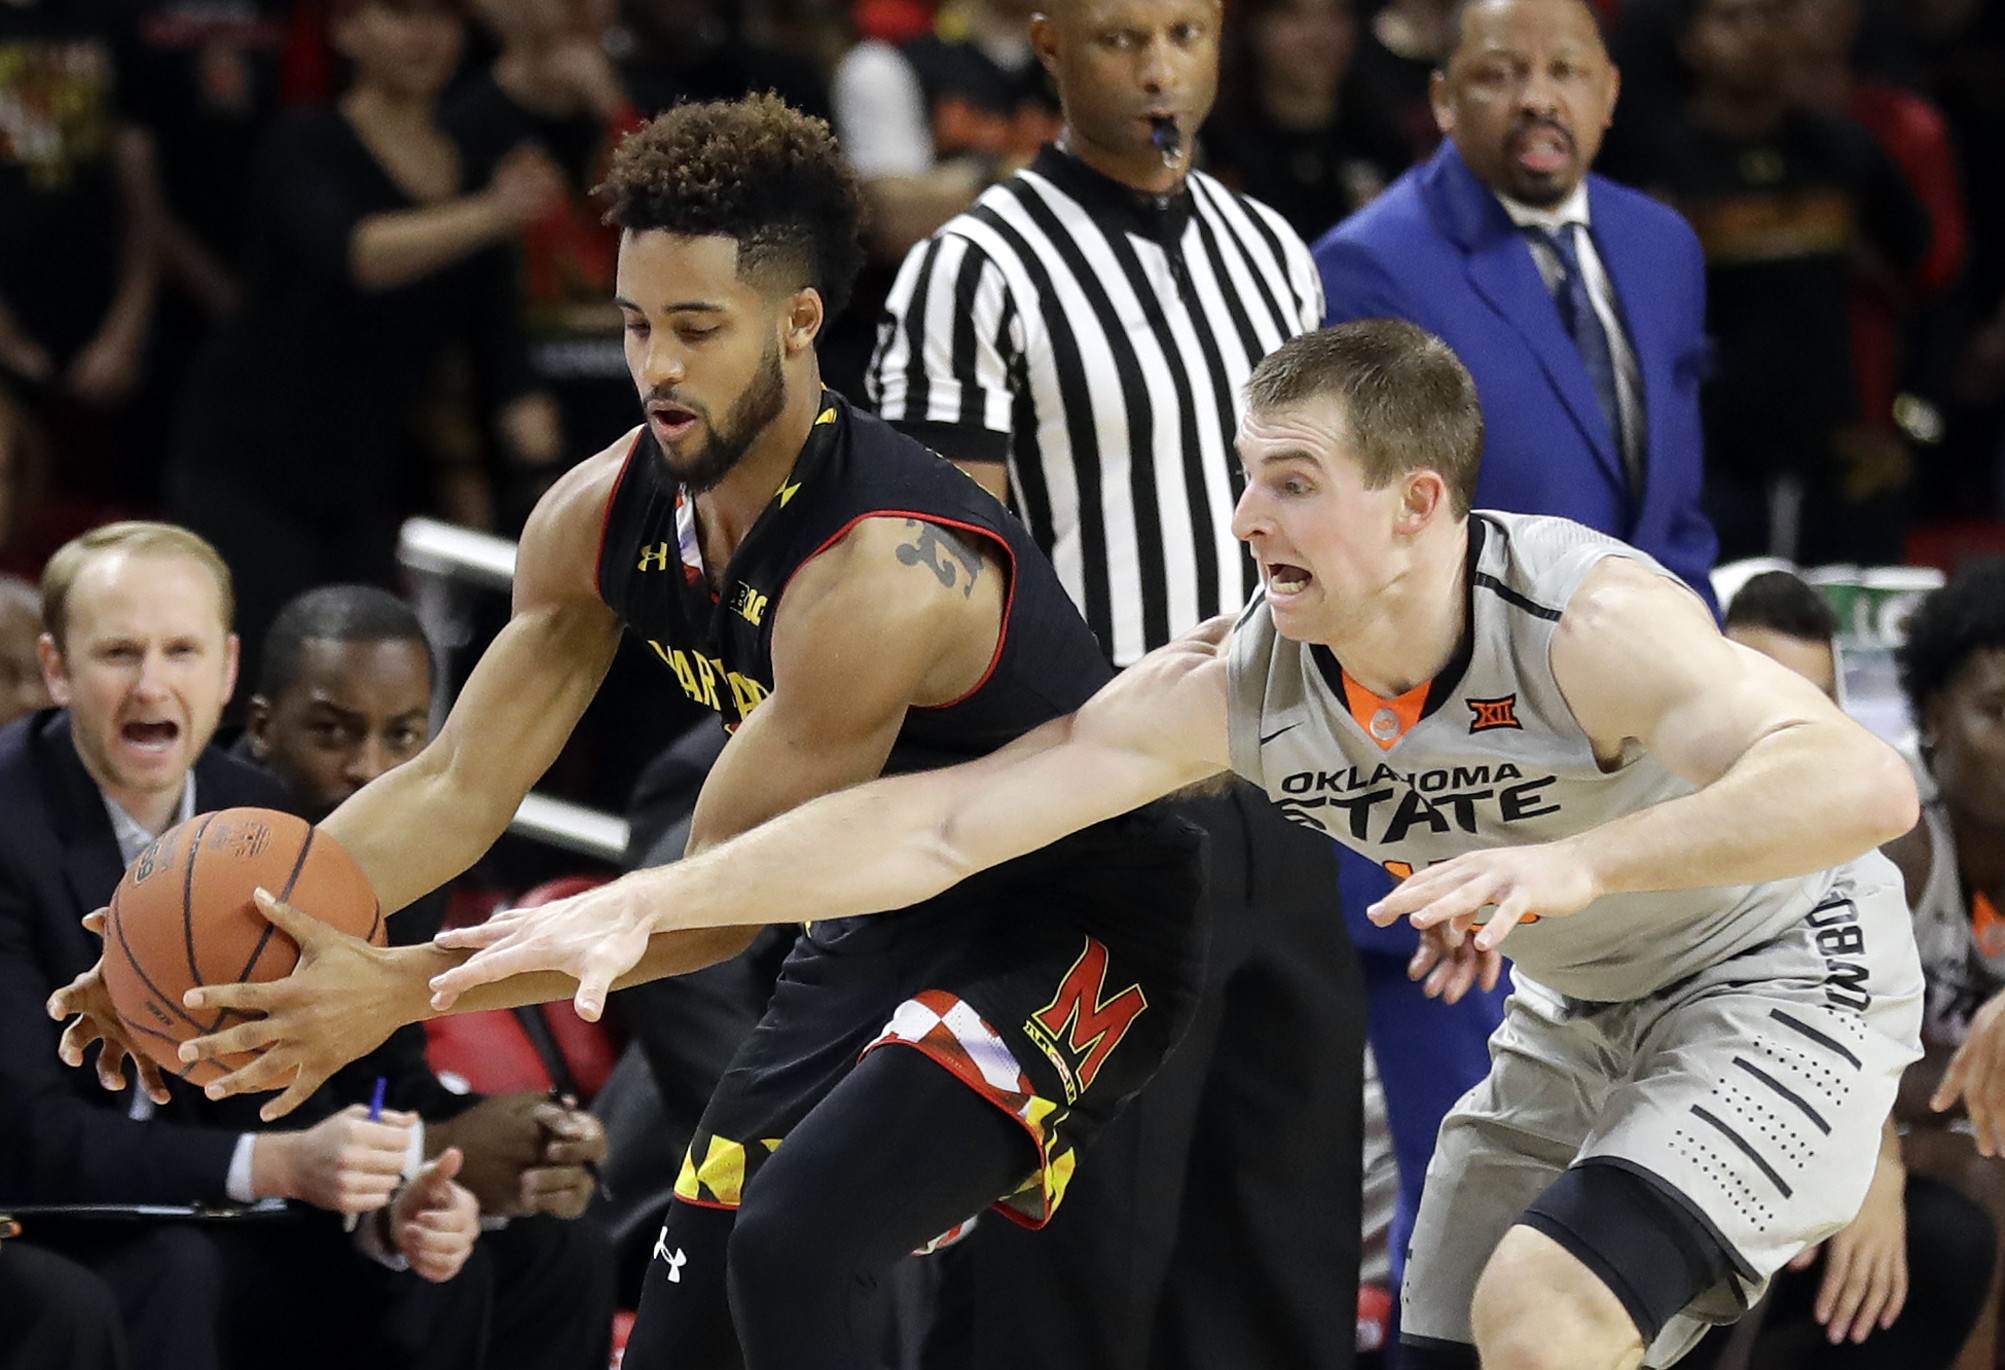 Bal-trimble-s-late-free-throws-lift-maryland-to-71-70-win-over-oklahoma-state-20161203